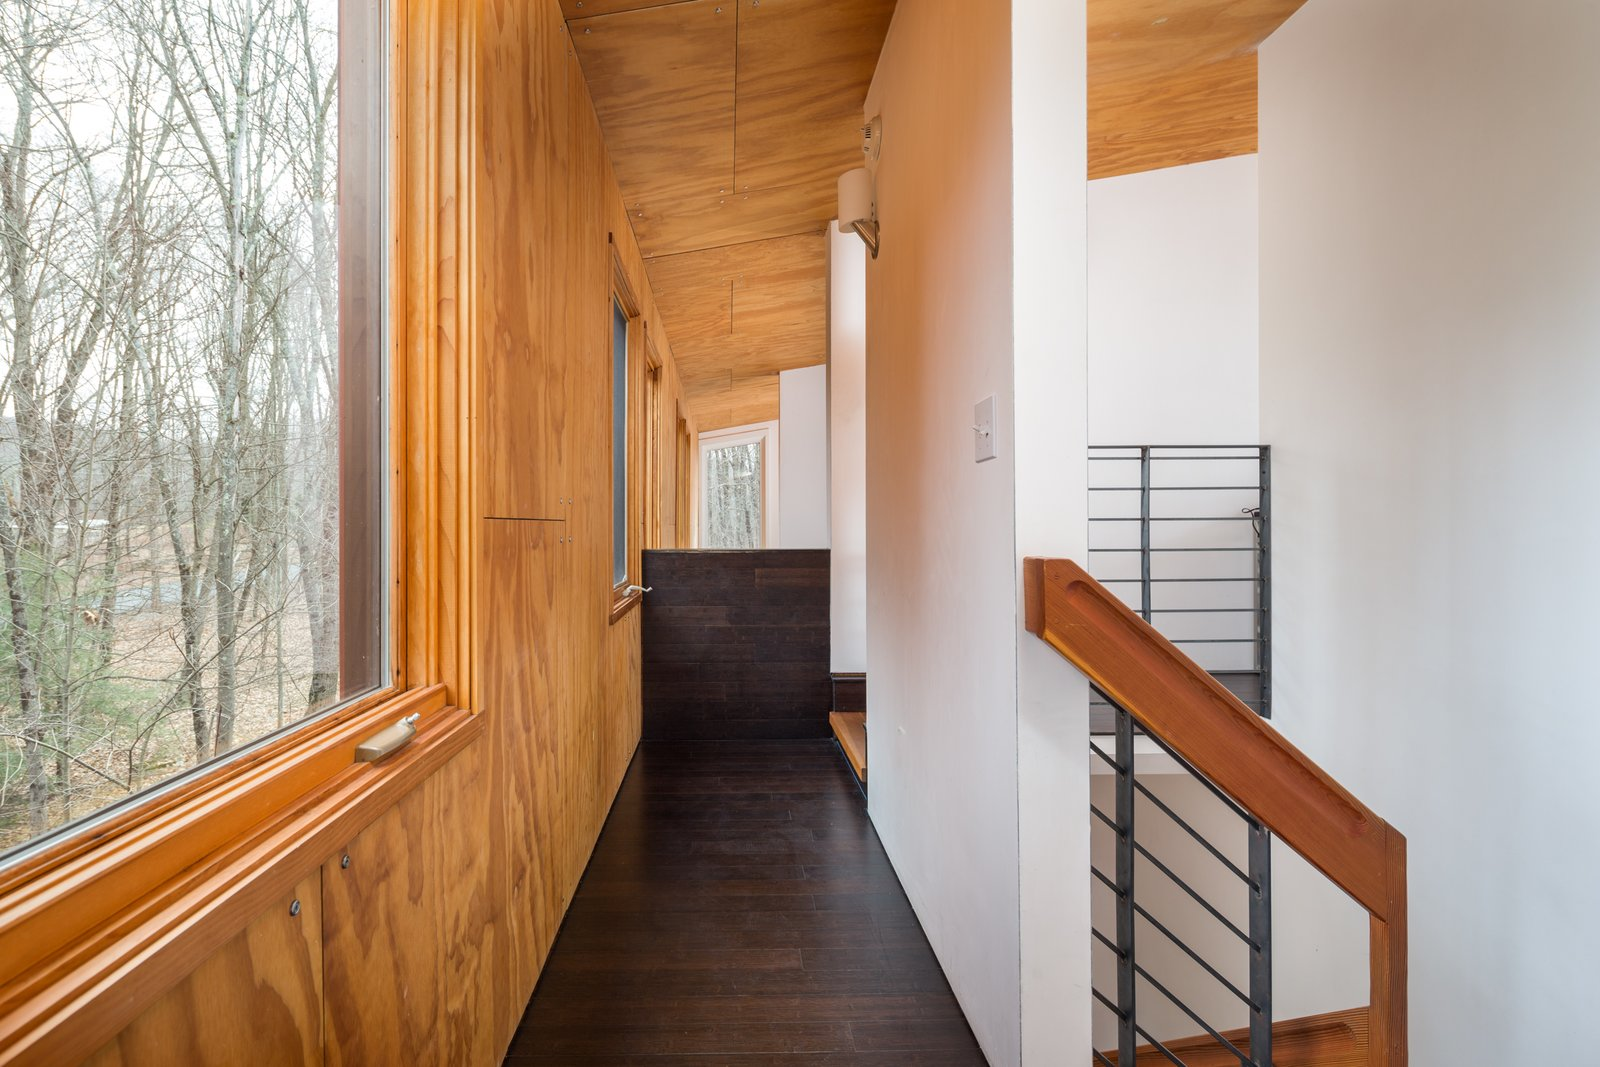 The large windows bring in so much natural light that the home rarely needs electrical lighting throughout the daytime.